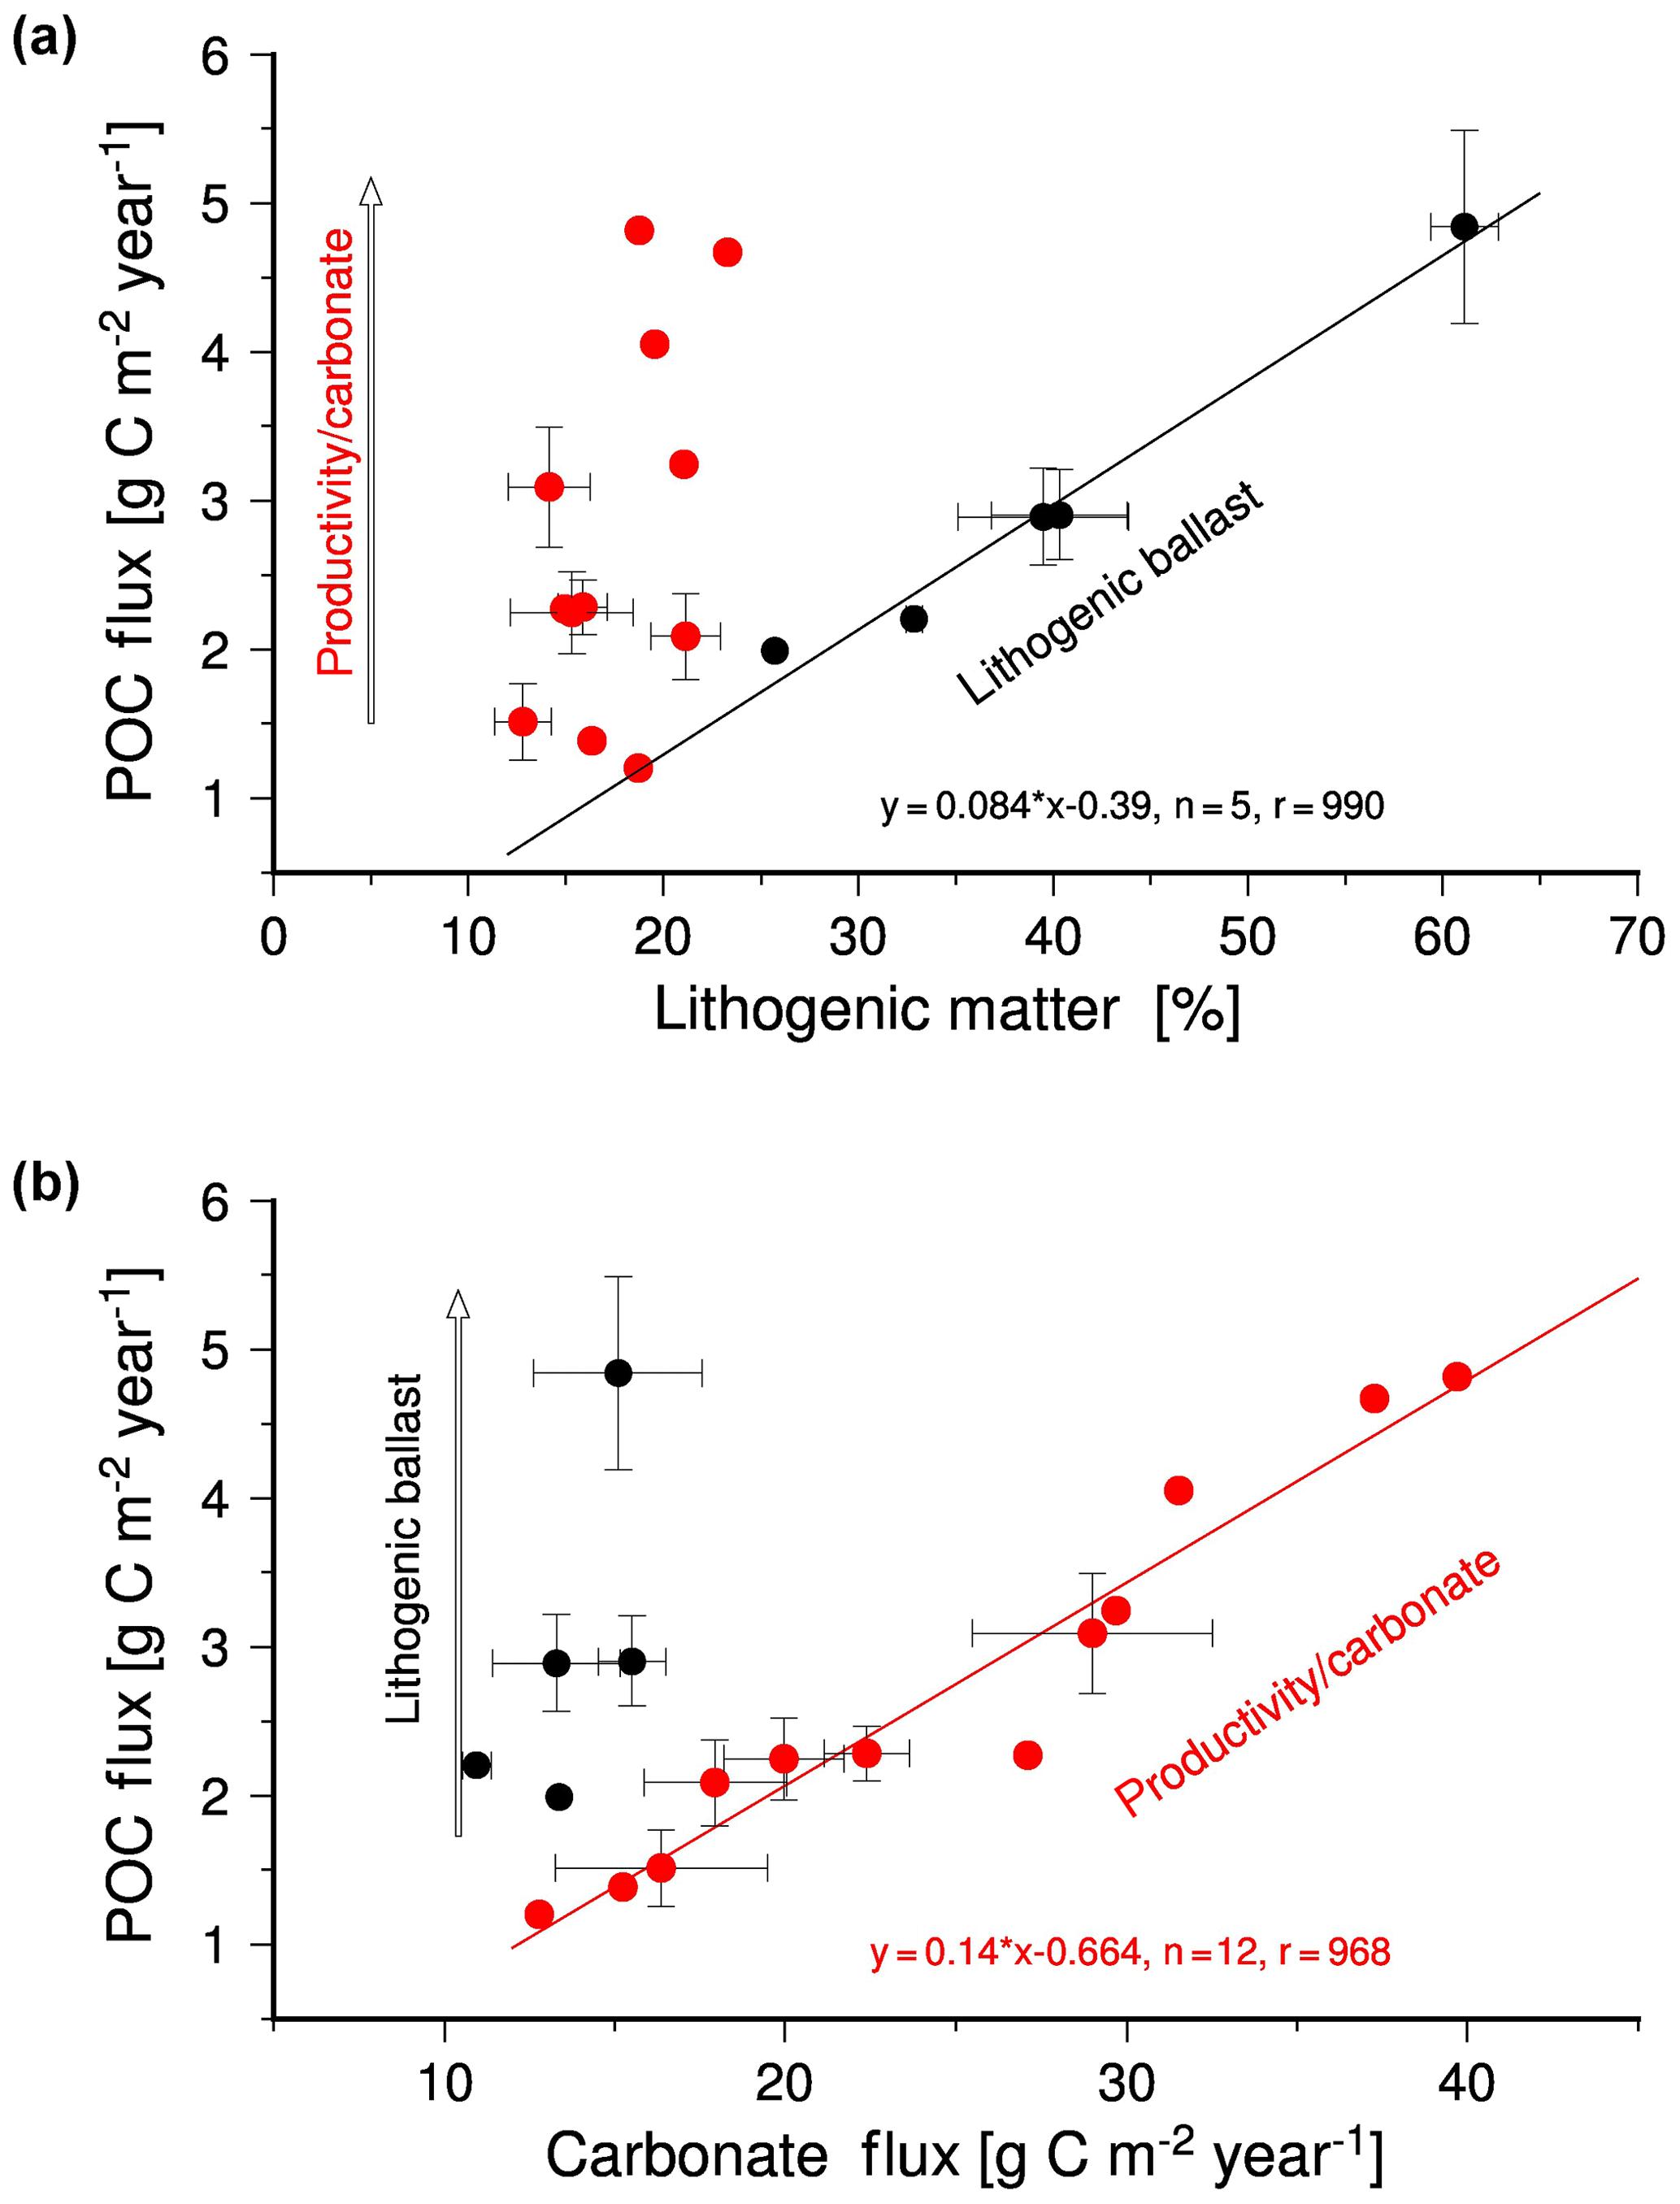 BG - The ballast effect of lithogenic matter and its